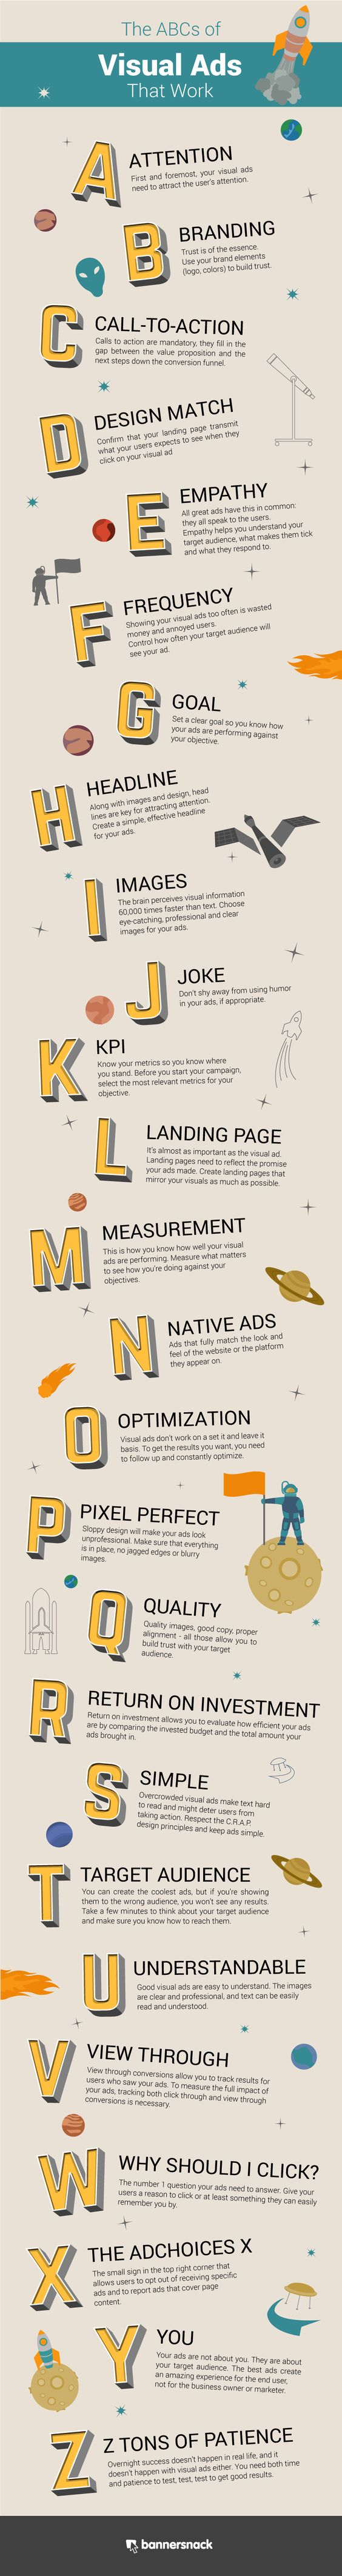 abcs of advertising images.jpg